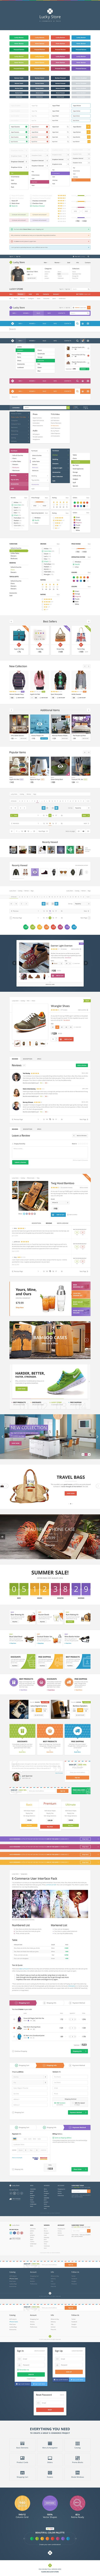 Lucky Store — E-Commerce UI Pack by Sergey Azovskiy http://flexrs.me/lucky-store/